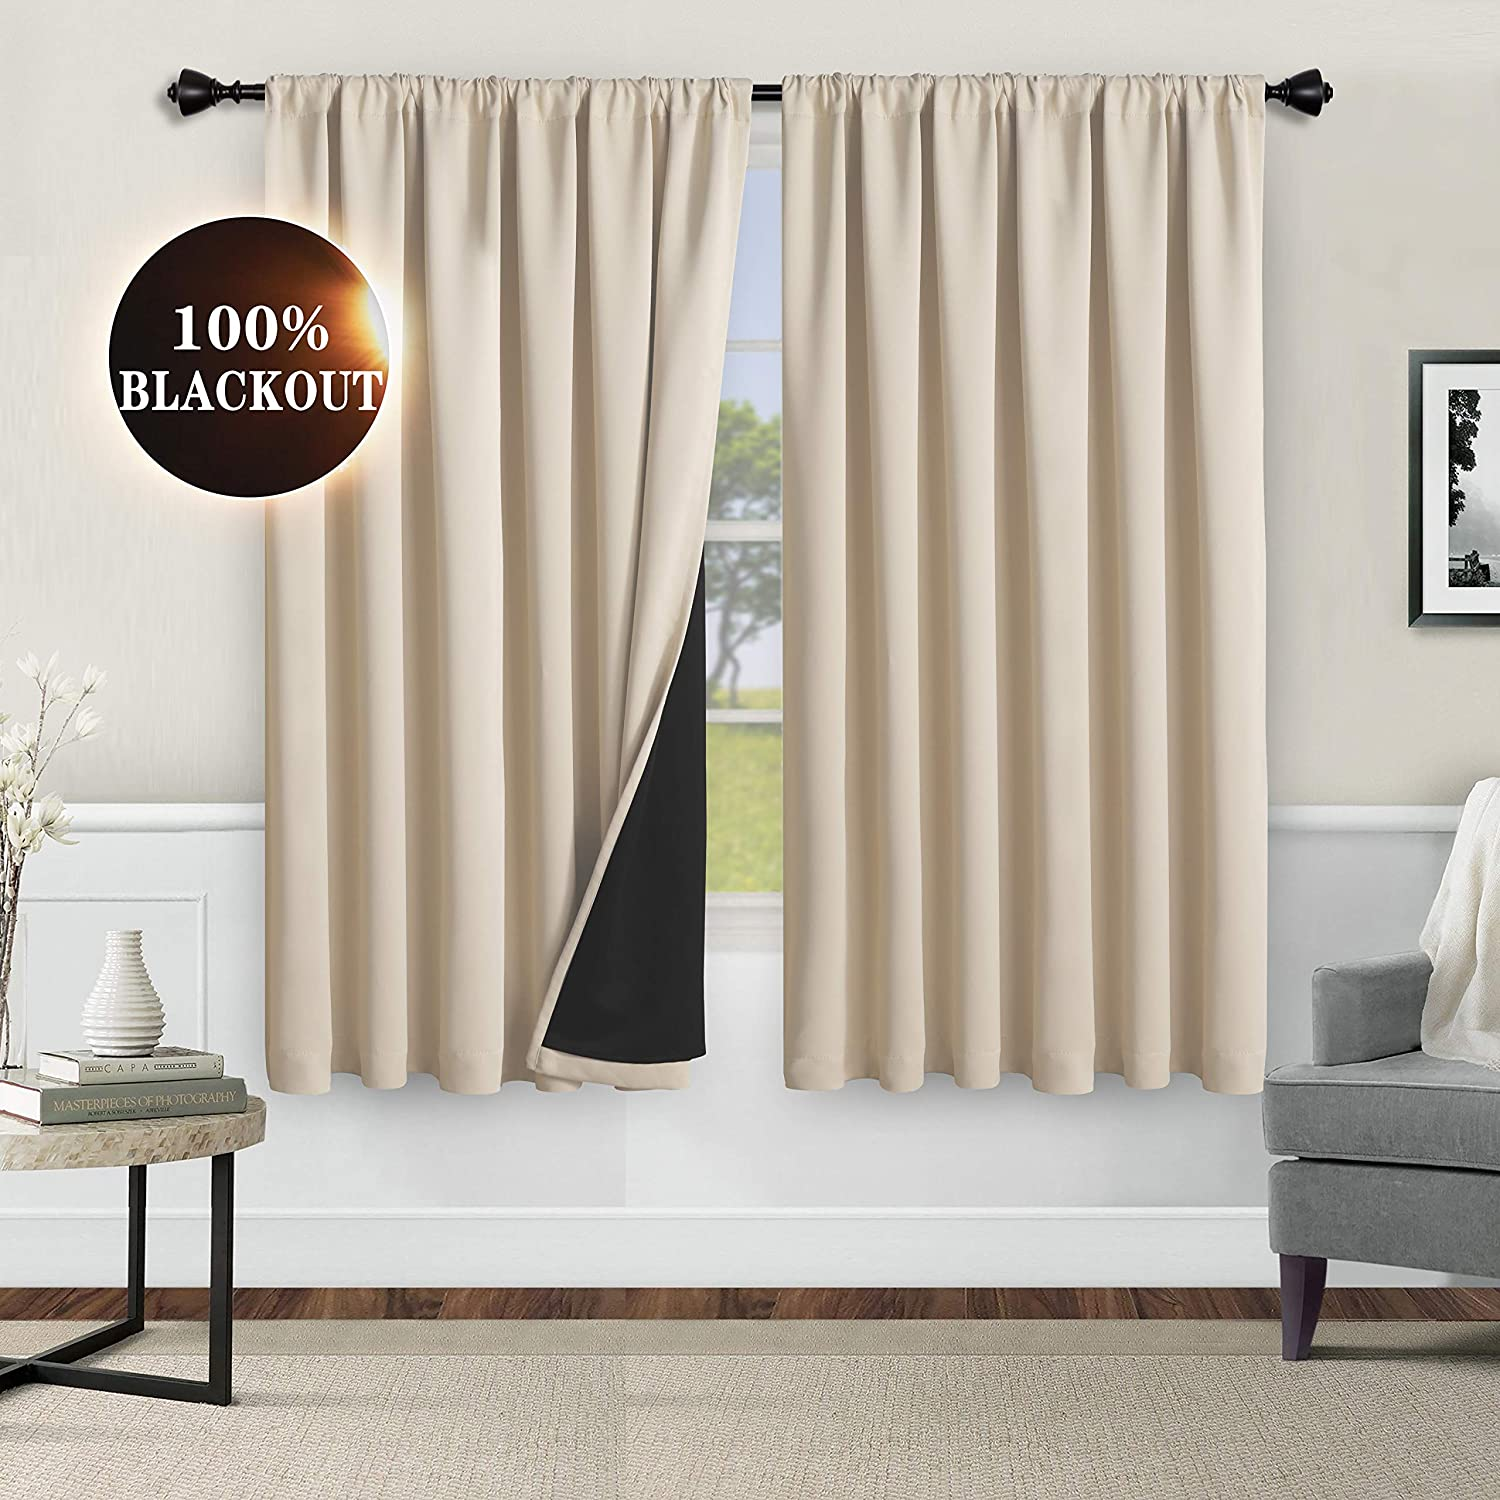 WONTEX 100% Thermal Blackout Curtains for Bedroom - Winter Insulating Rod Pocket Window Curtain Panels, Noise Reducing and Sun Blocking Lined Living Room Curtains, Beige, 52 x 63 inch, Set of 2